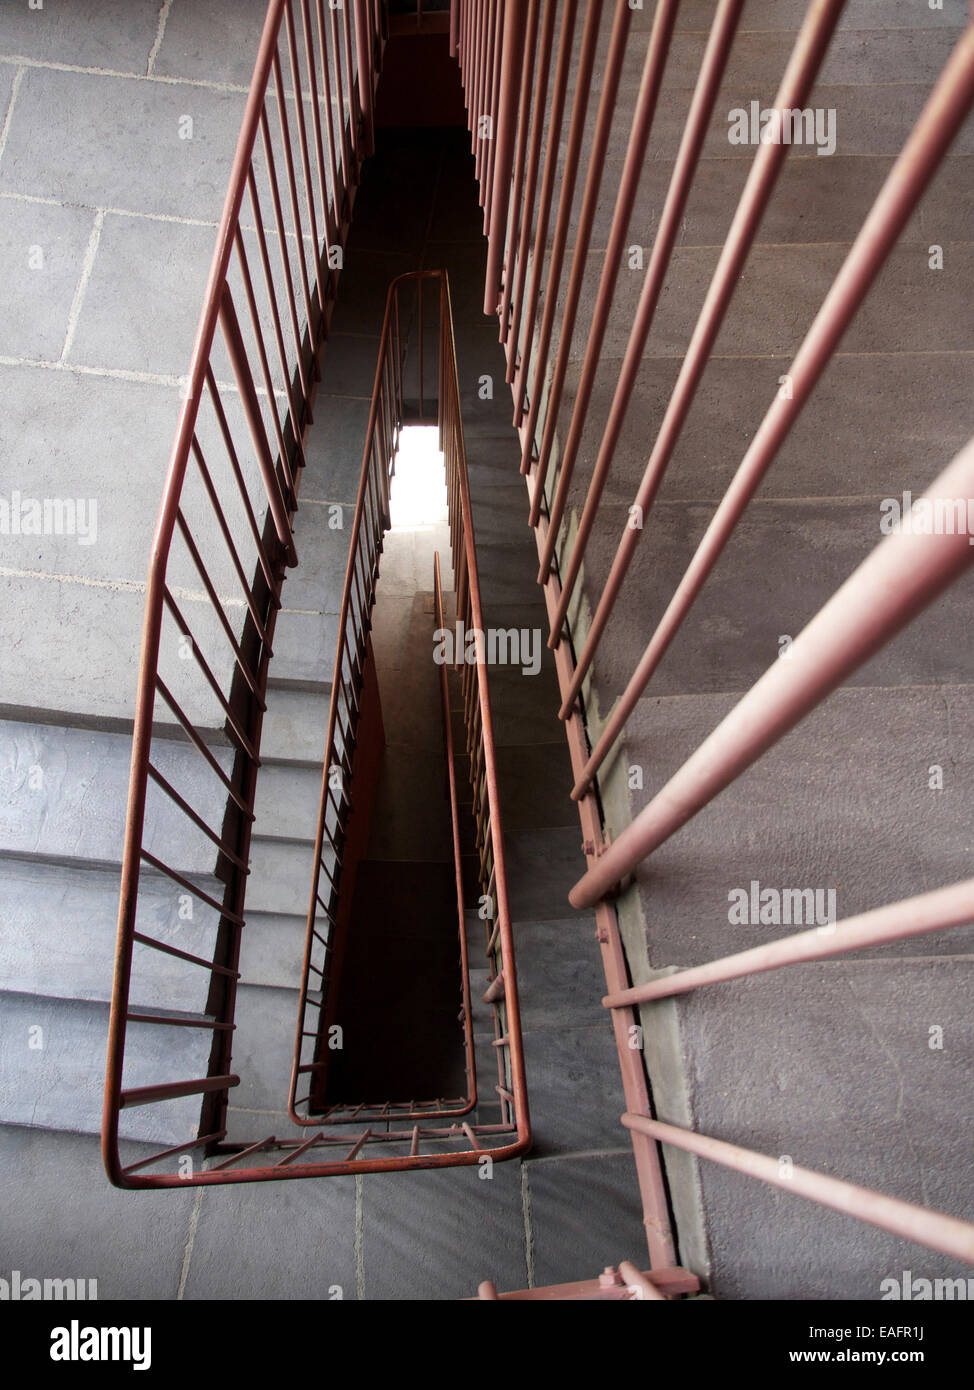 View directly above a staircase - Stock Image